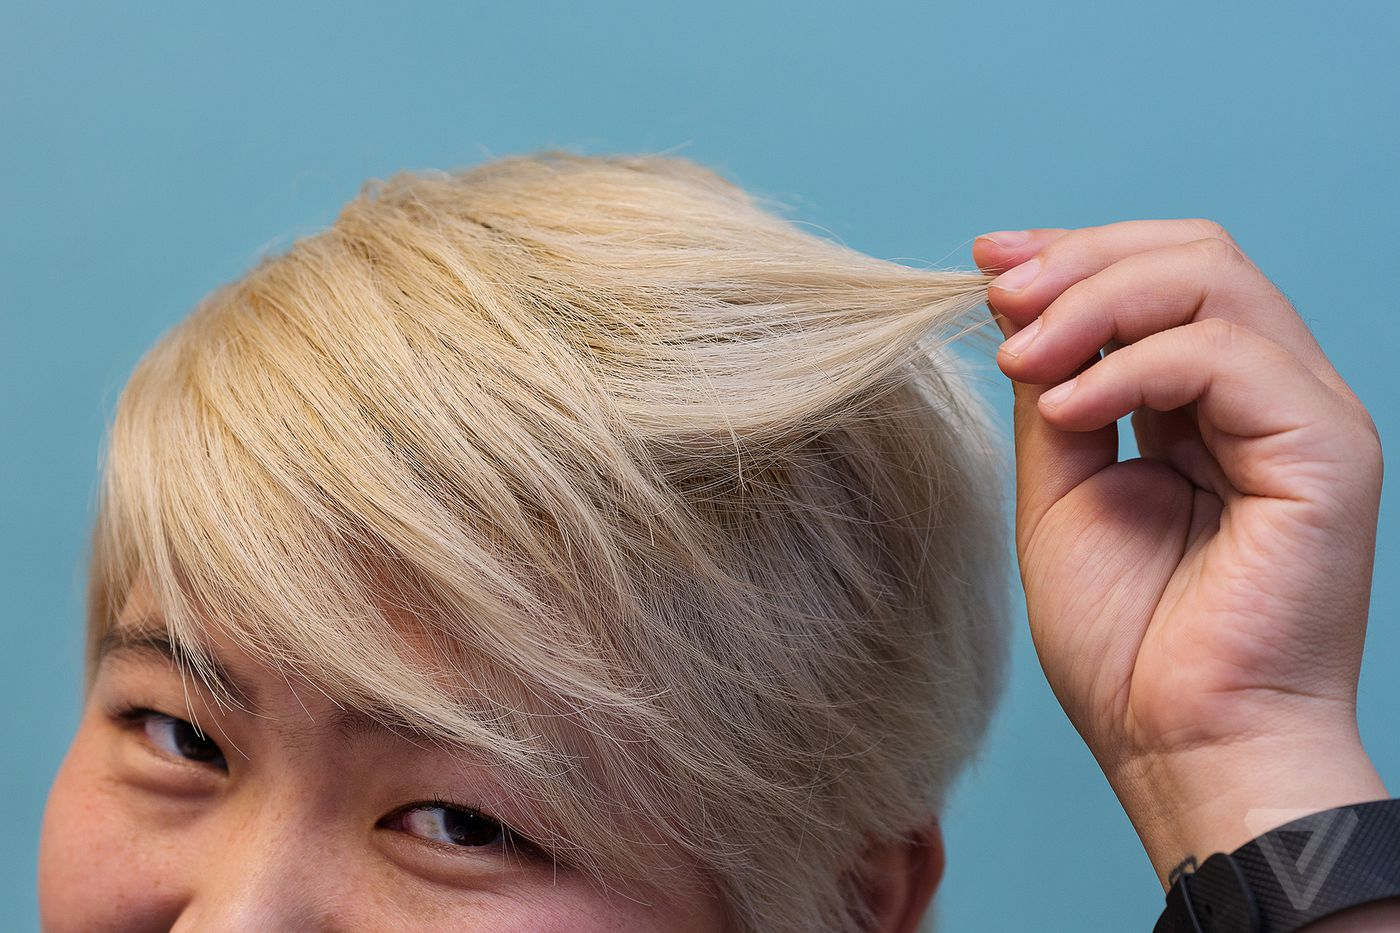 Truth, lies, and hair products - The Verge